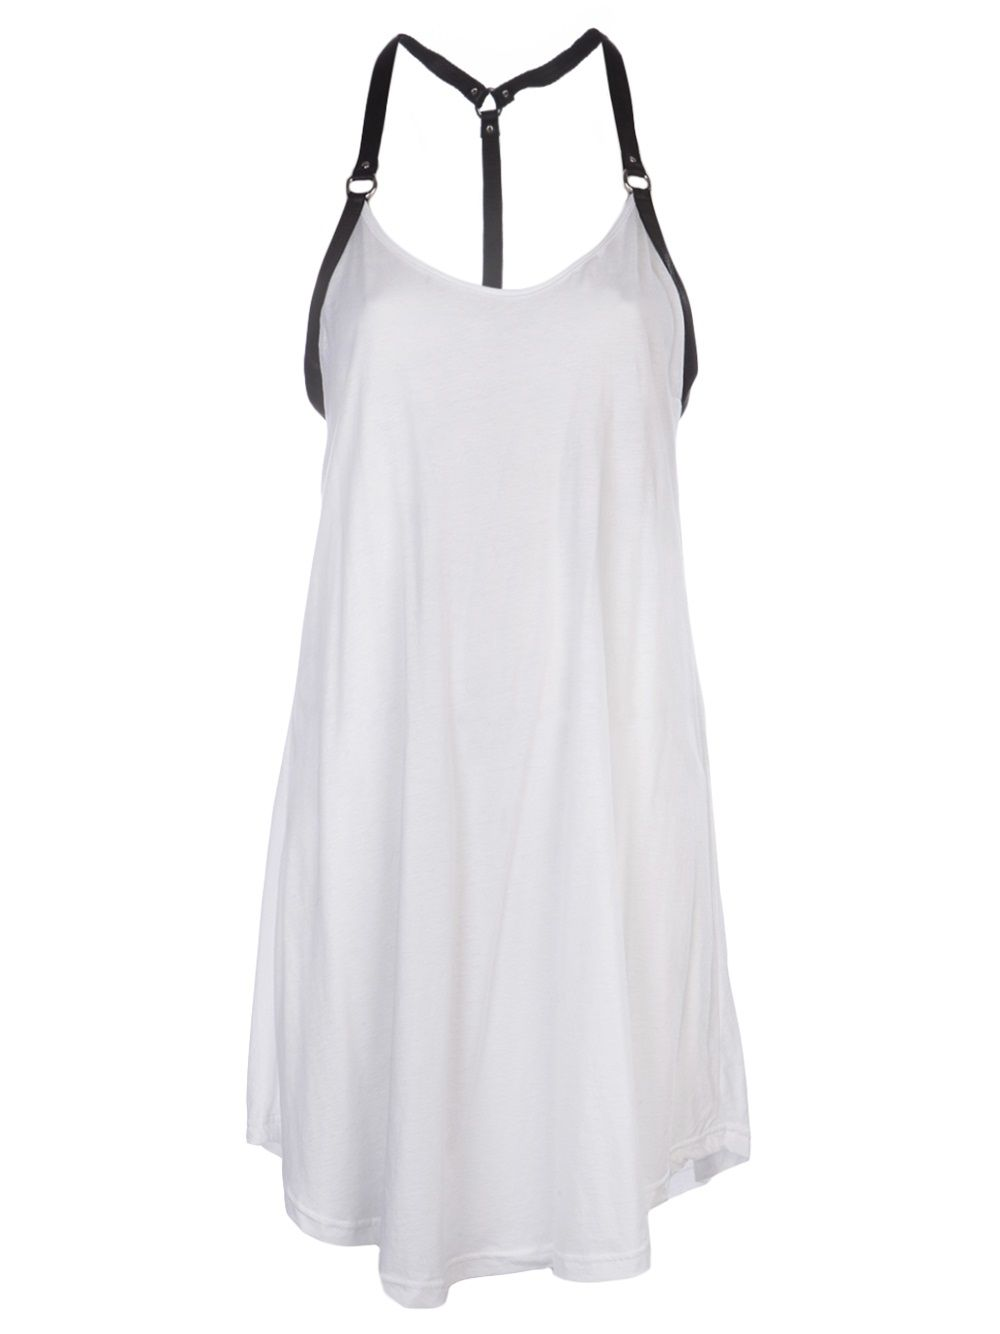 White tank dress cotton